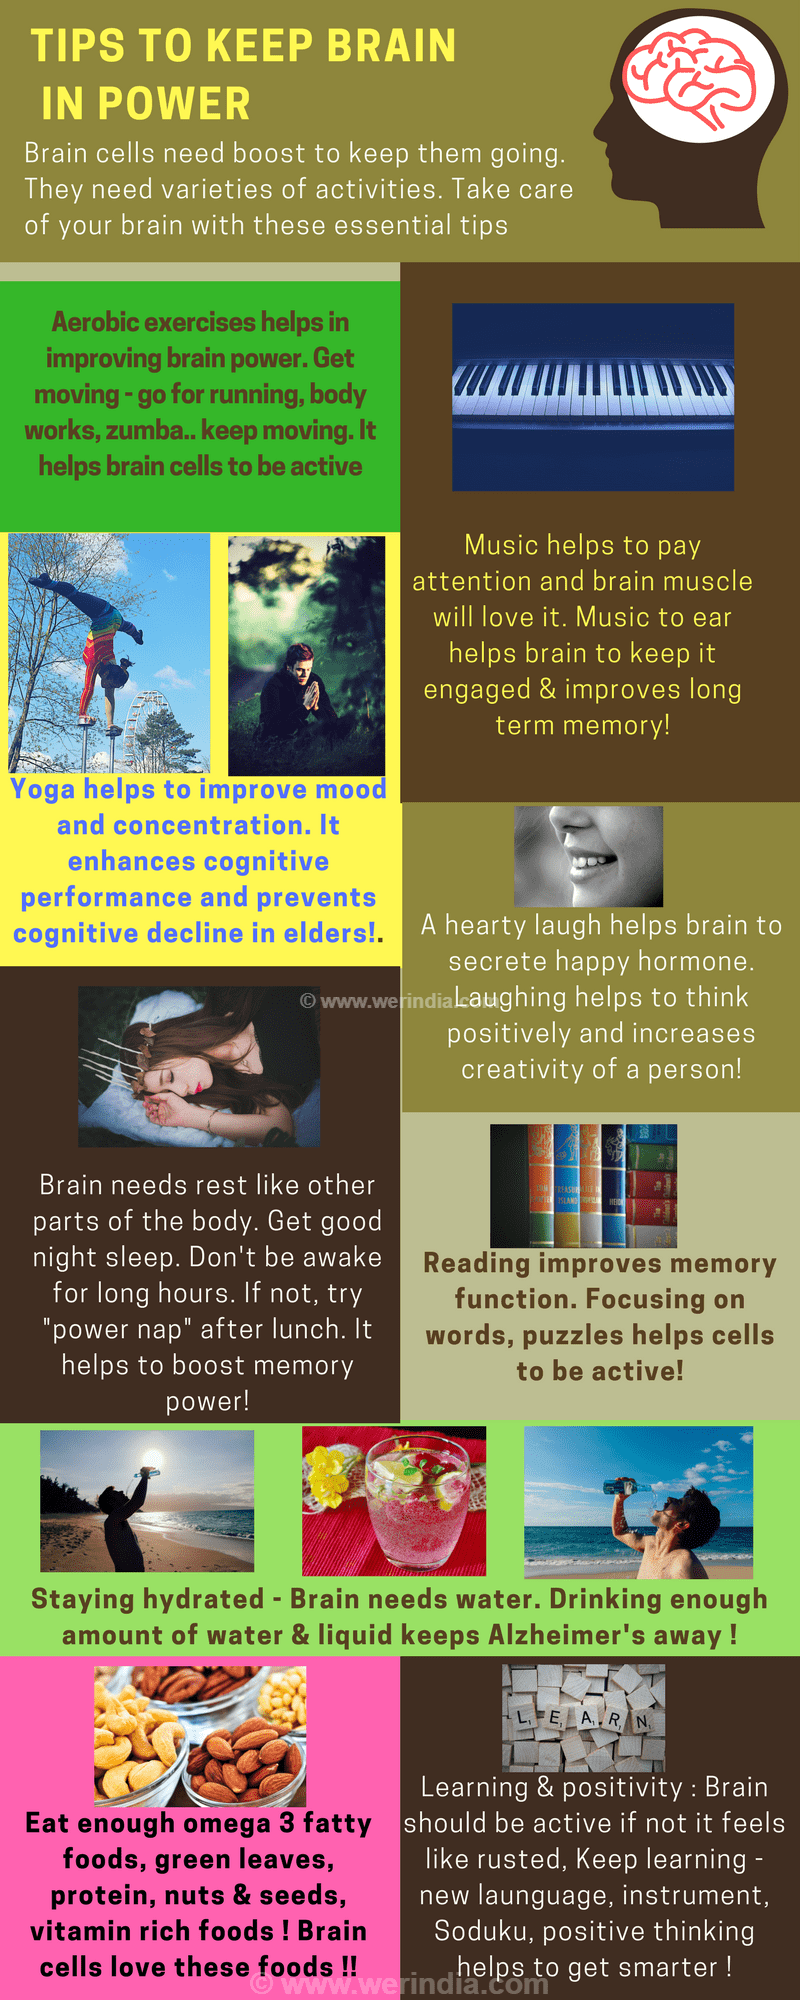 Tips to keep brain in power